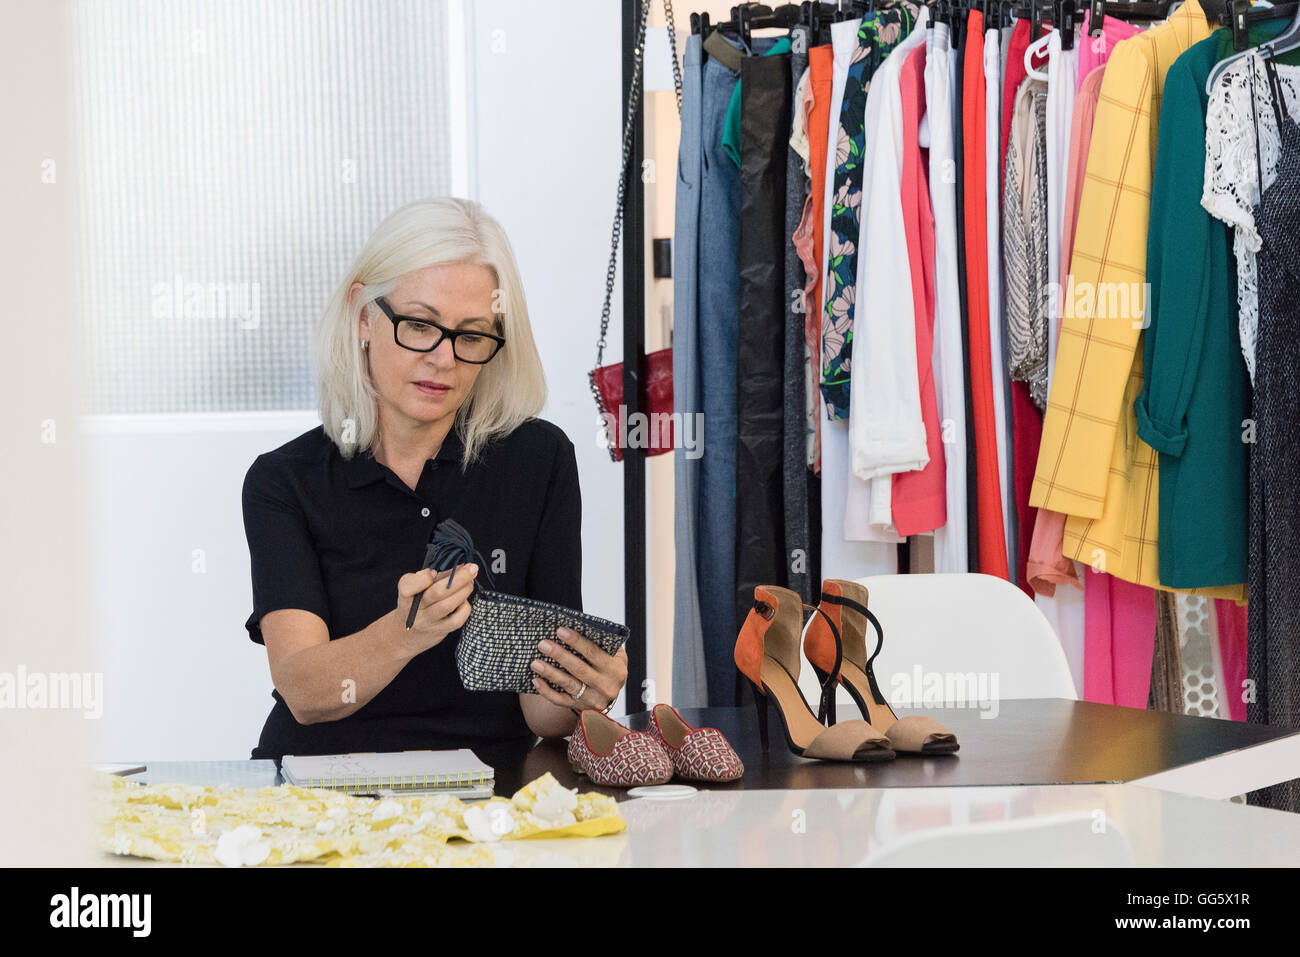 Female dress designer working in her shop - Stock Image